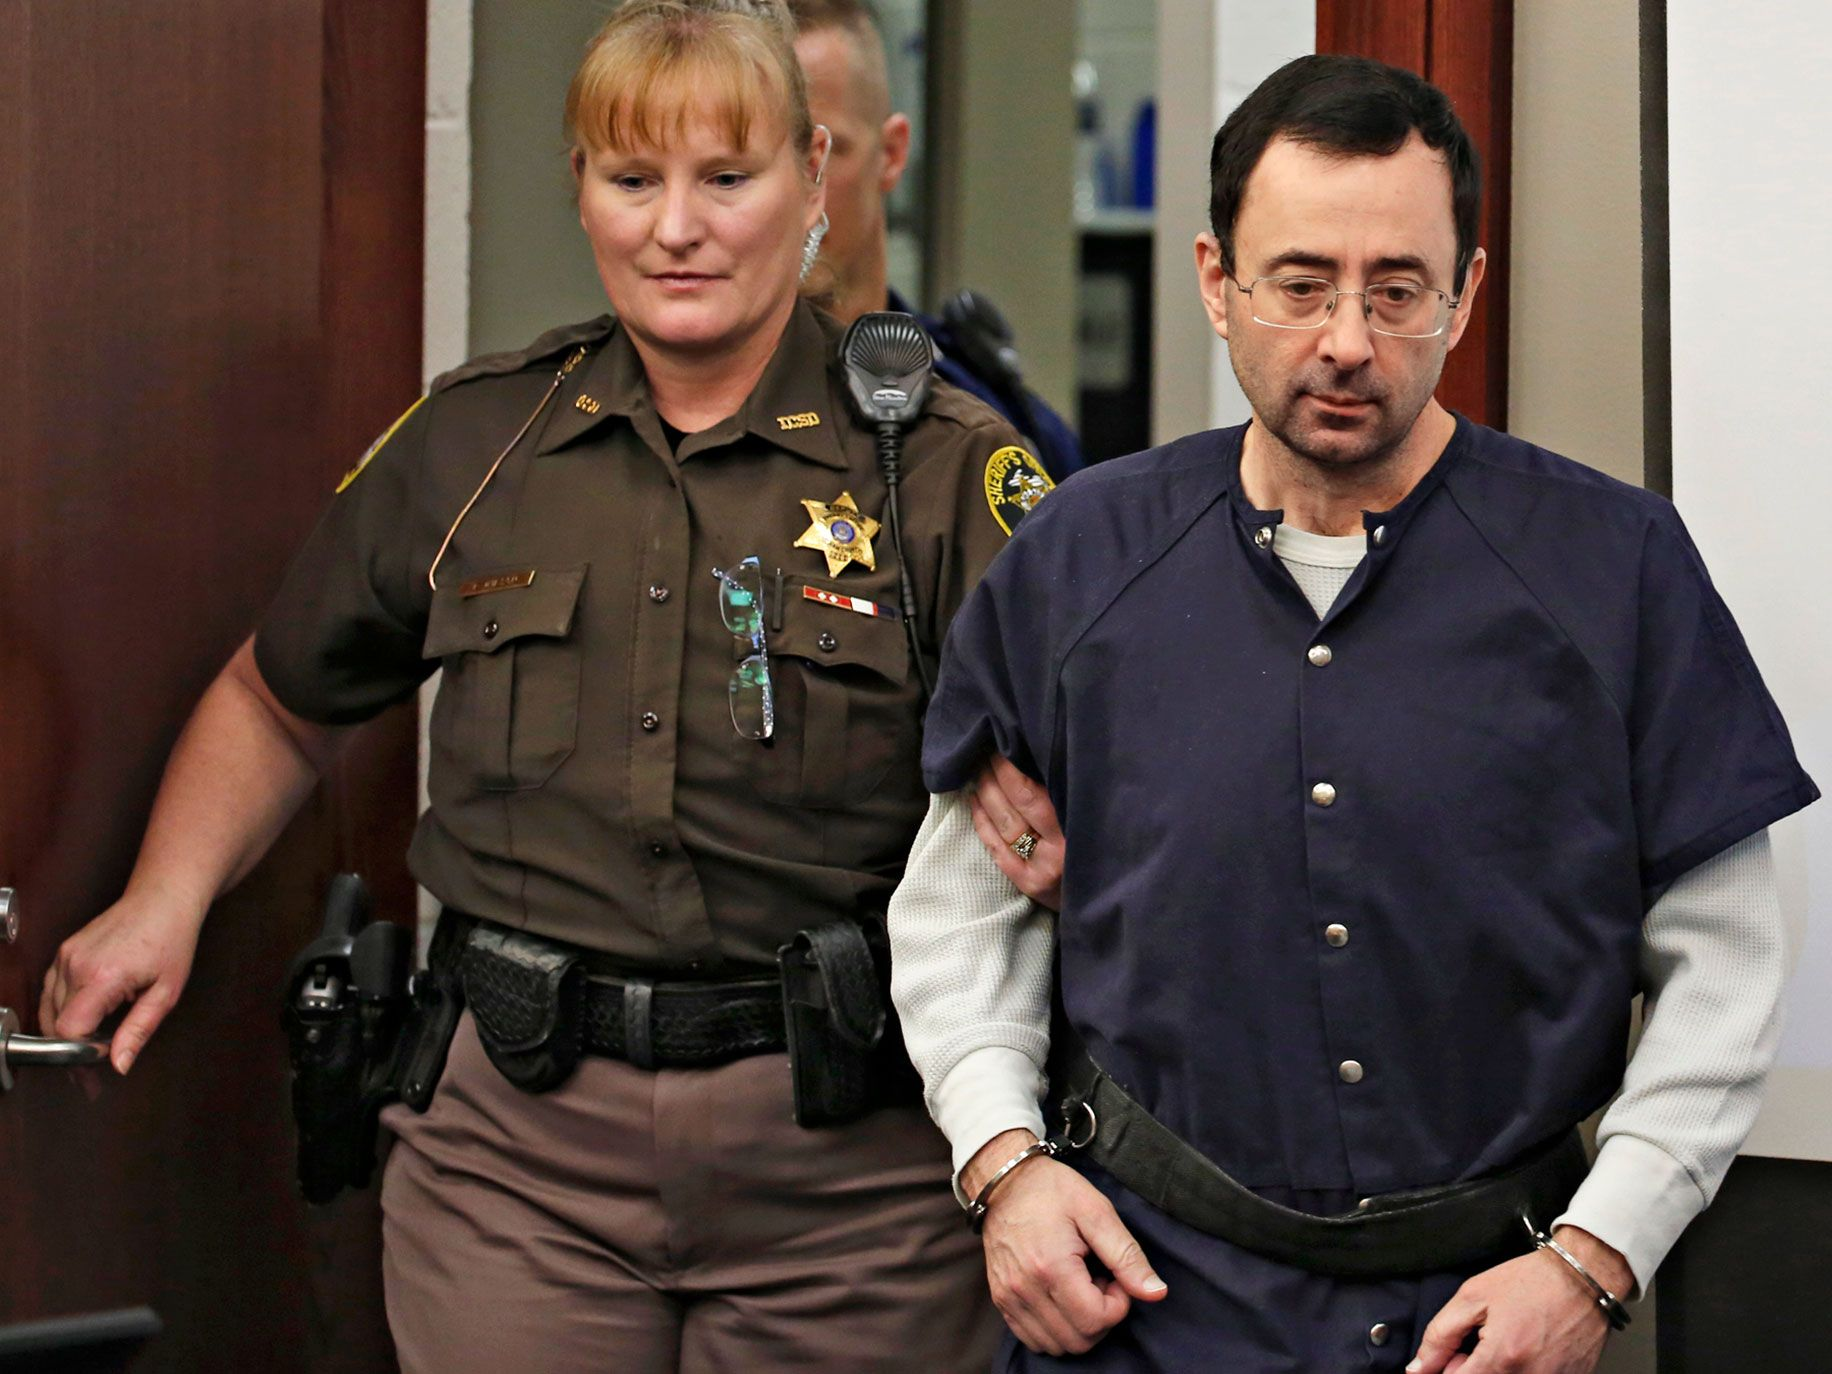 Former Michigan State University and USA Gymnastics doctor Larry Nassar arrives for a sentencing hearing in Lansing, Mich., in January. More than 300 former gymnasts, many of them represented by John Manly, have accused Nassar of a pattern of abuse dating back two decades.